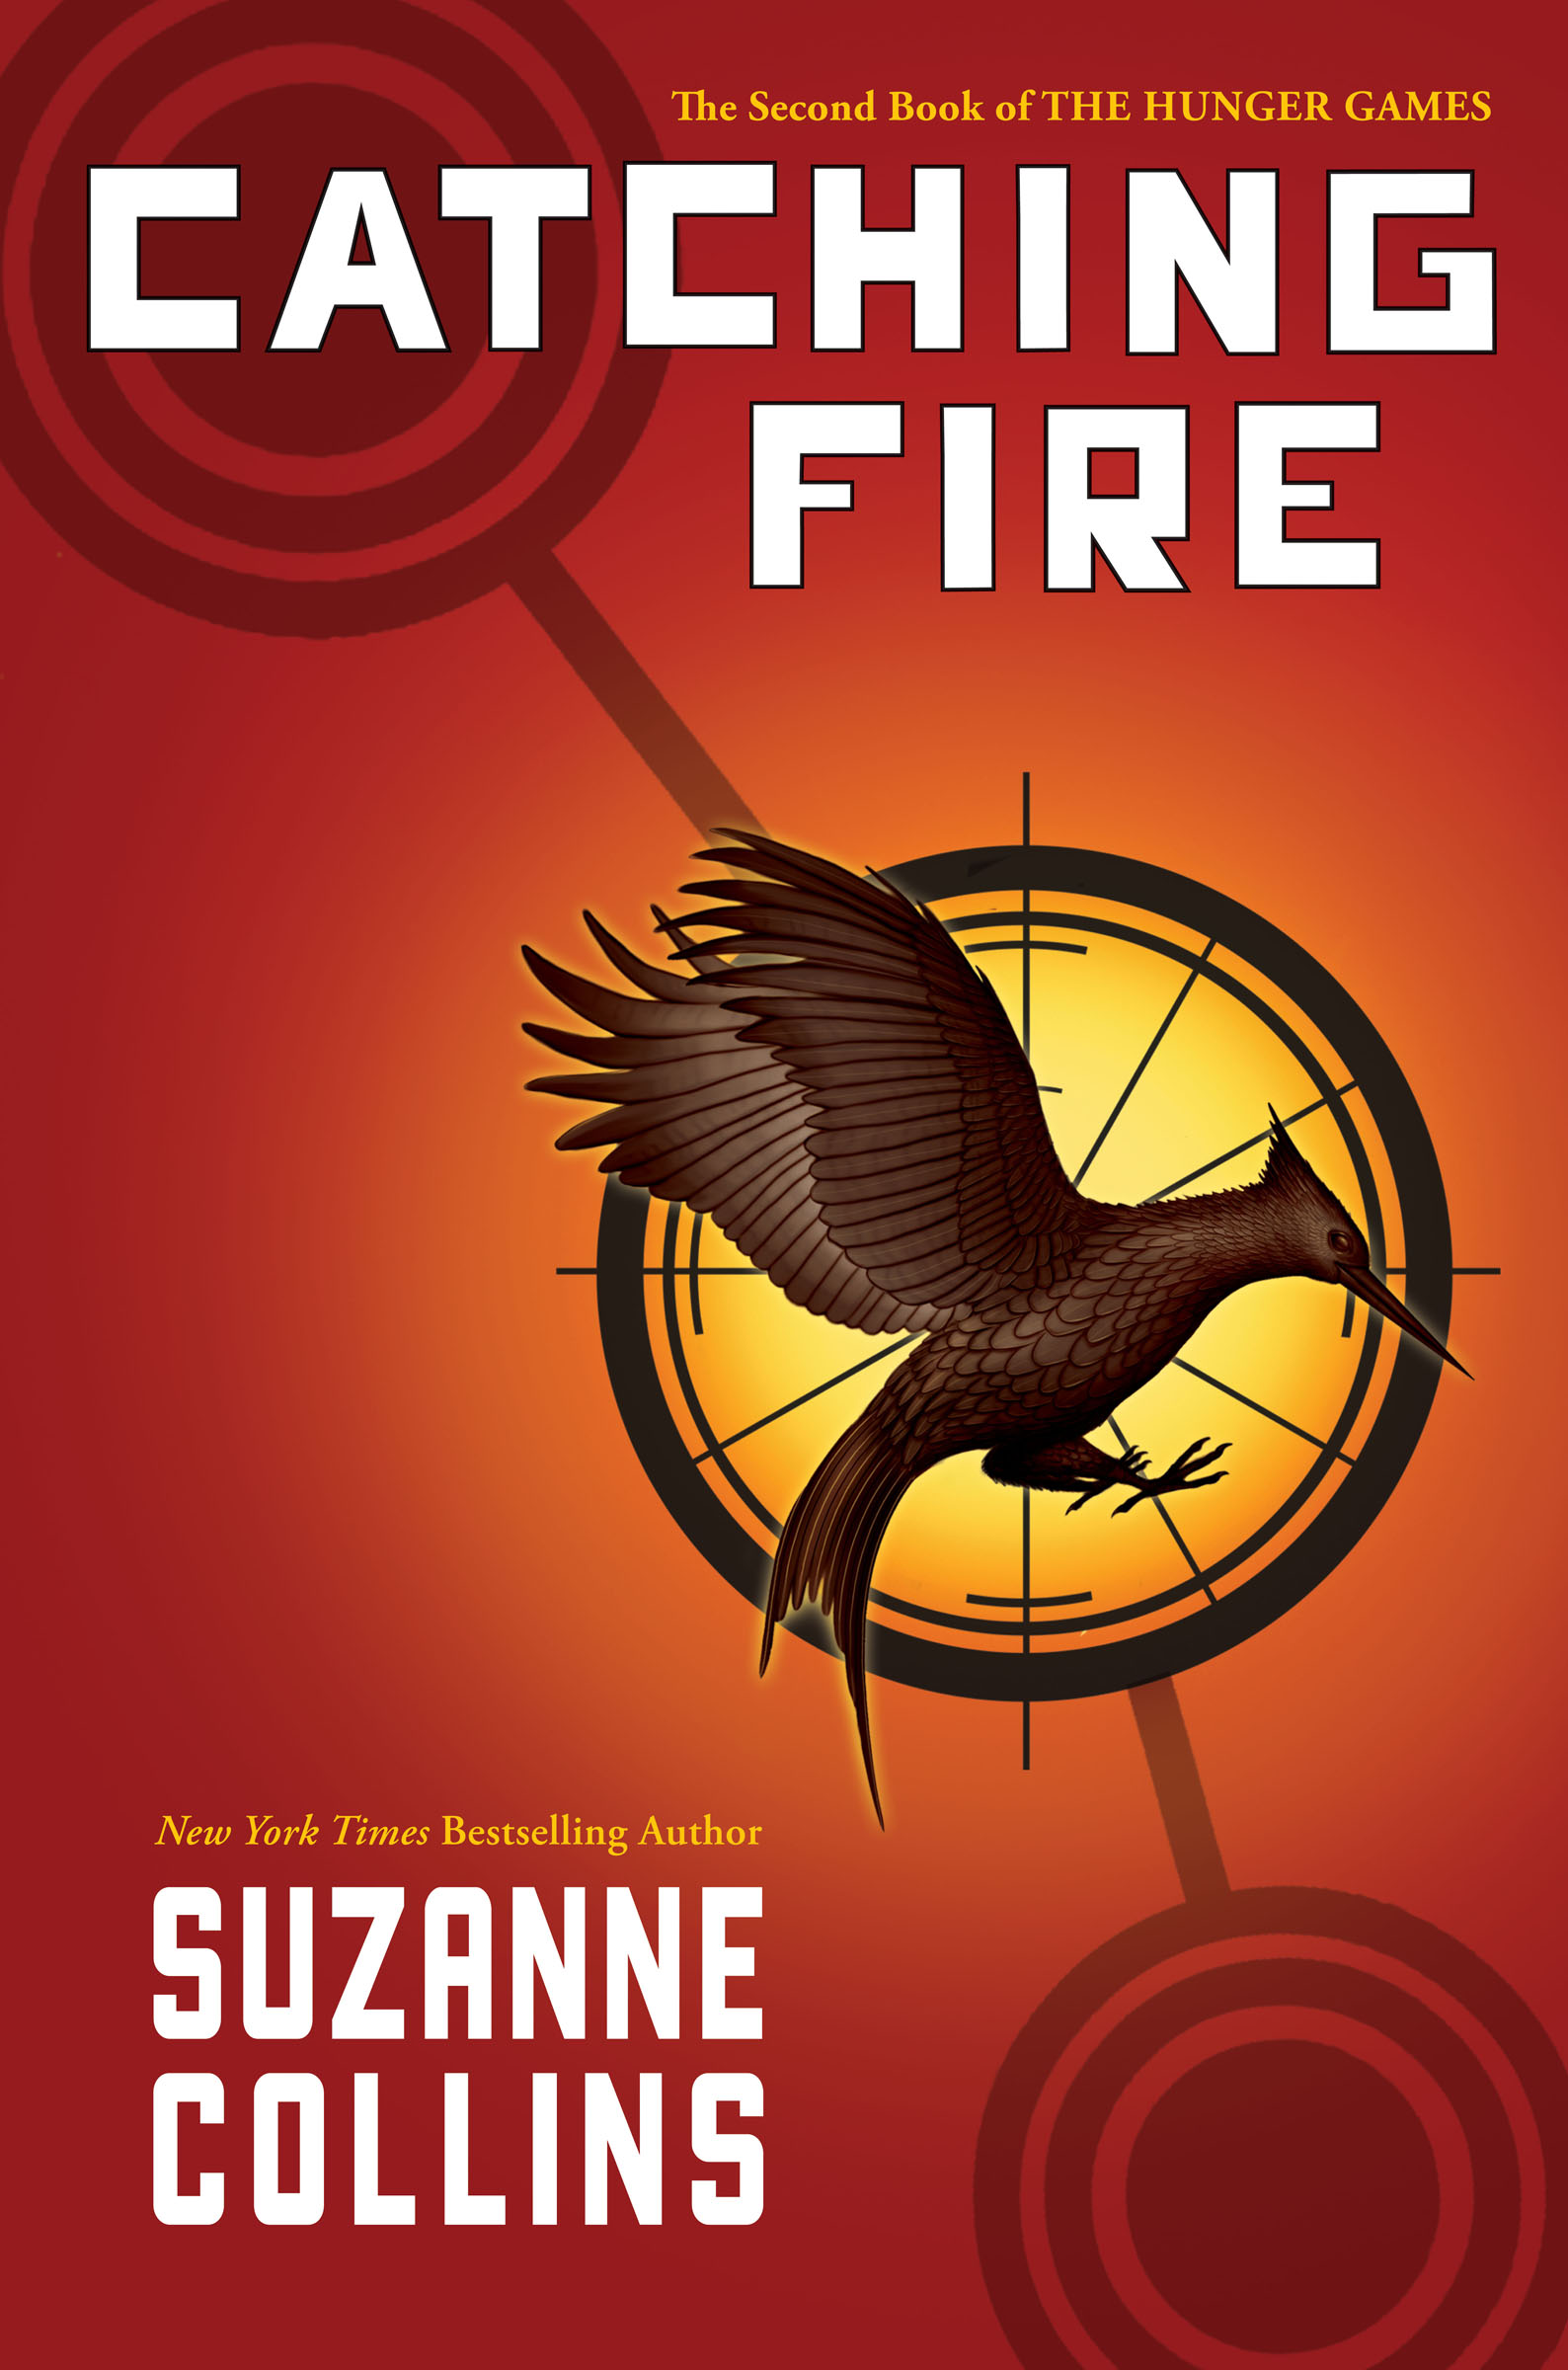 Catching Fire Book 2 in The Hunger Games  Suzanne